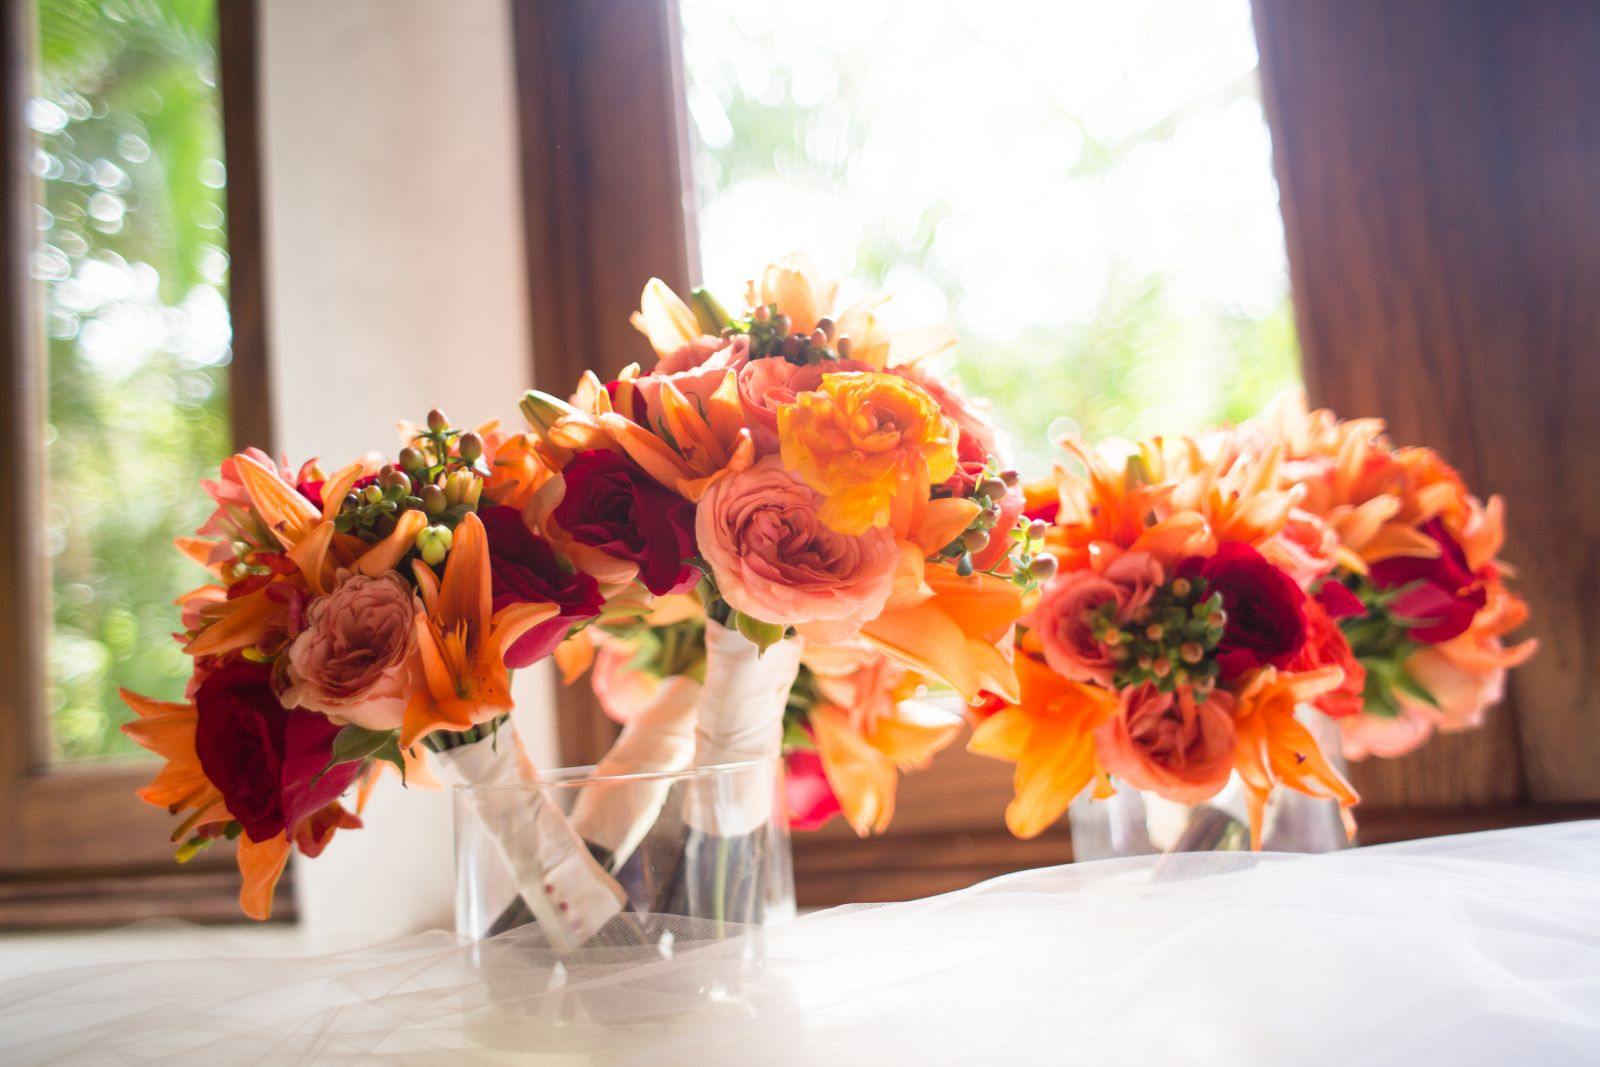 Flowers for bridal party!